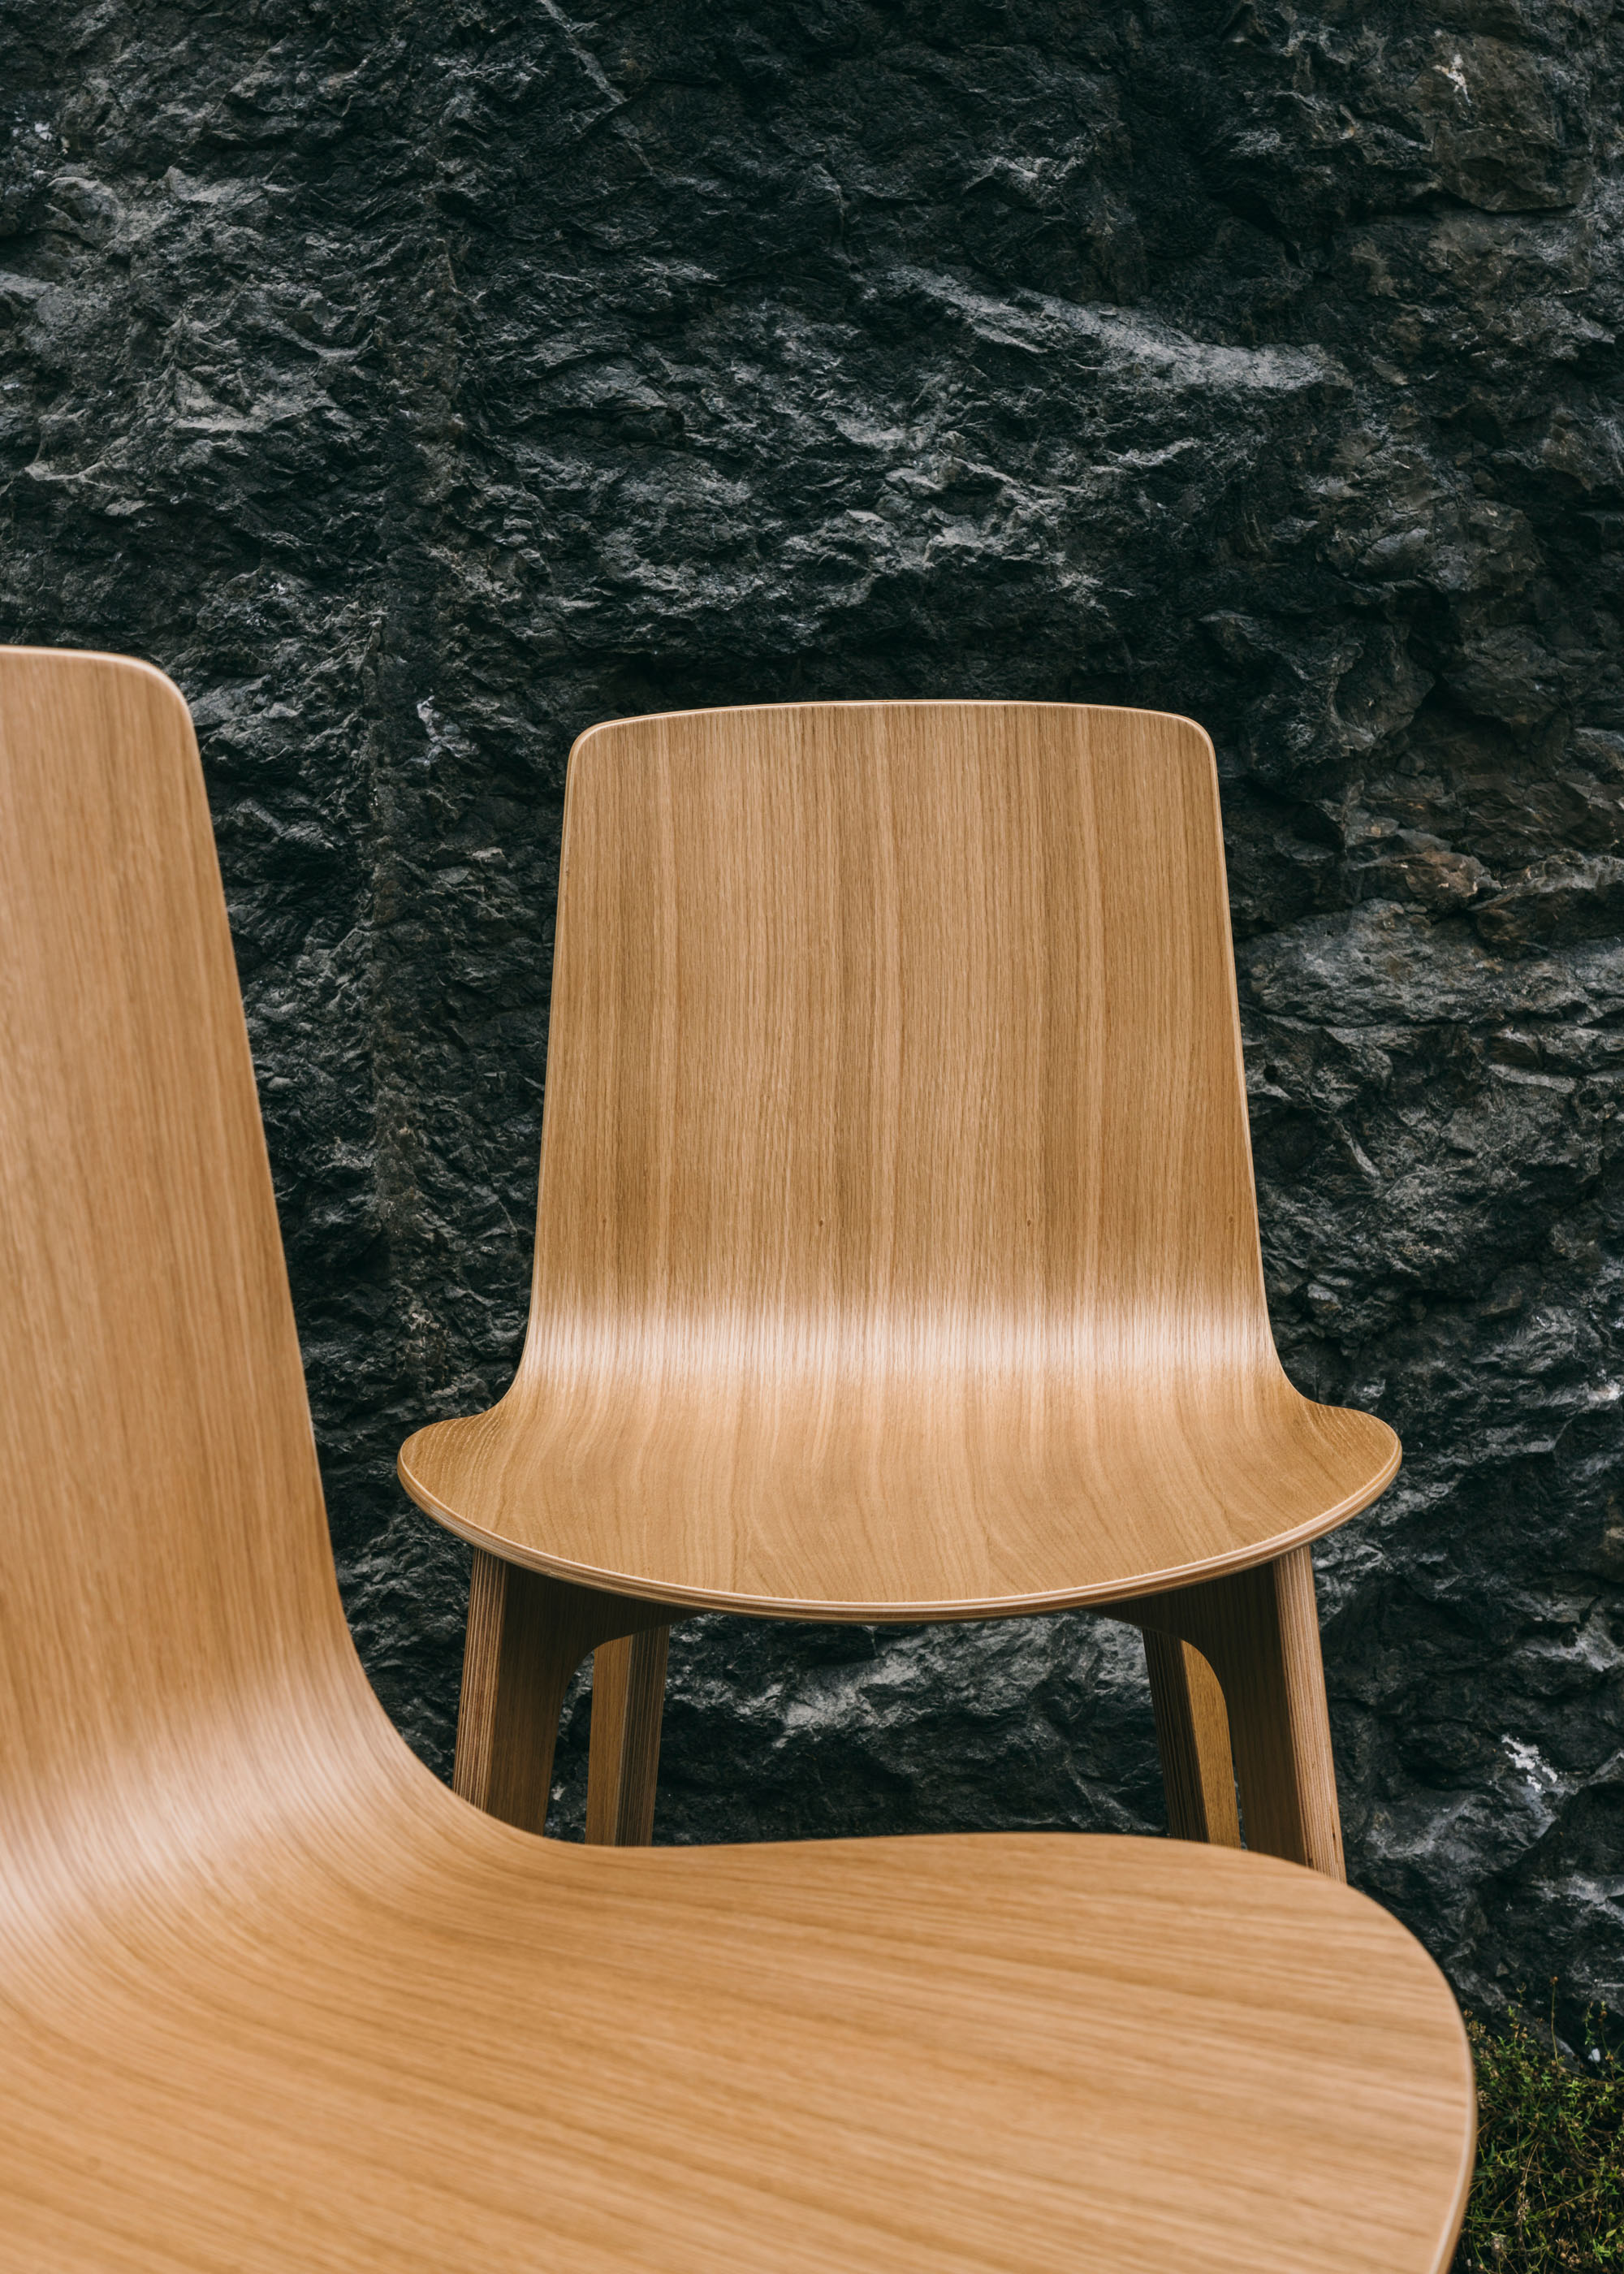 #furniture #enea #design #clase #basque #chairs #stilllife #wood